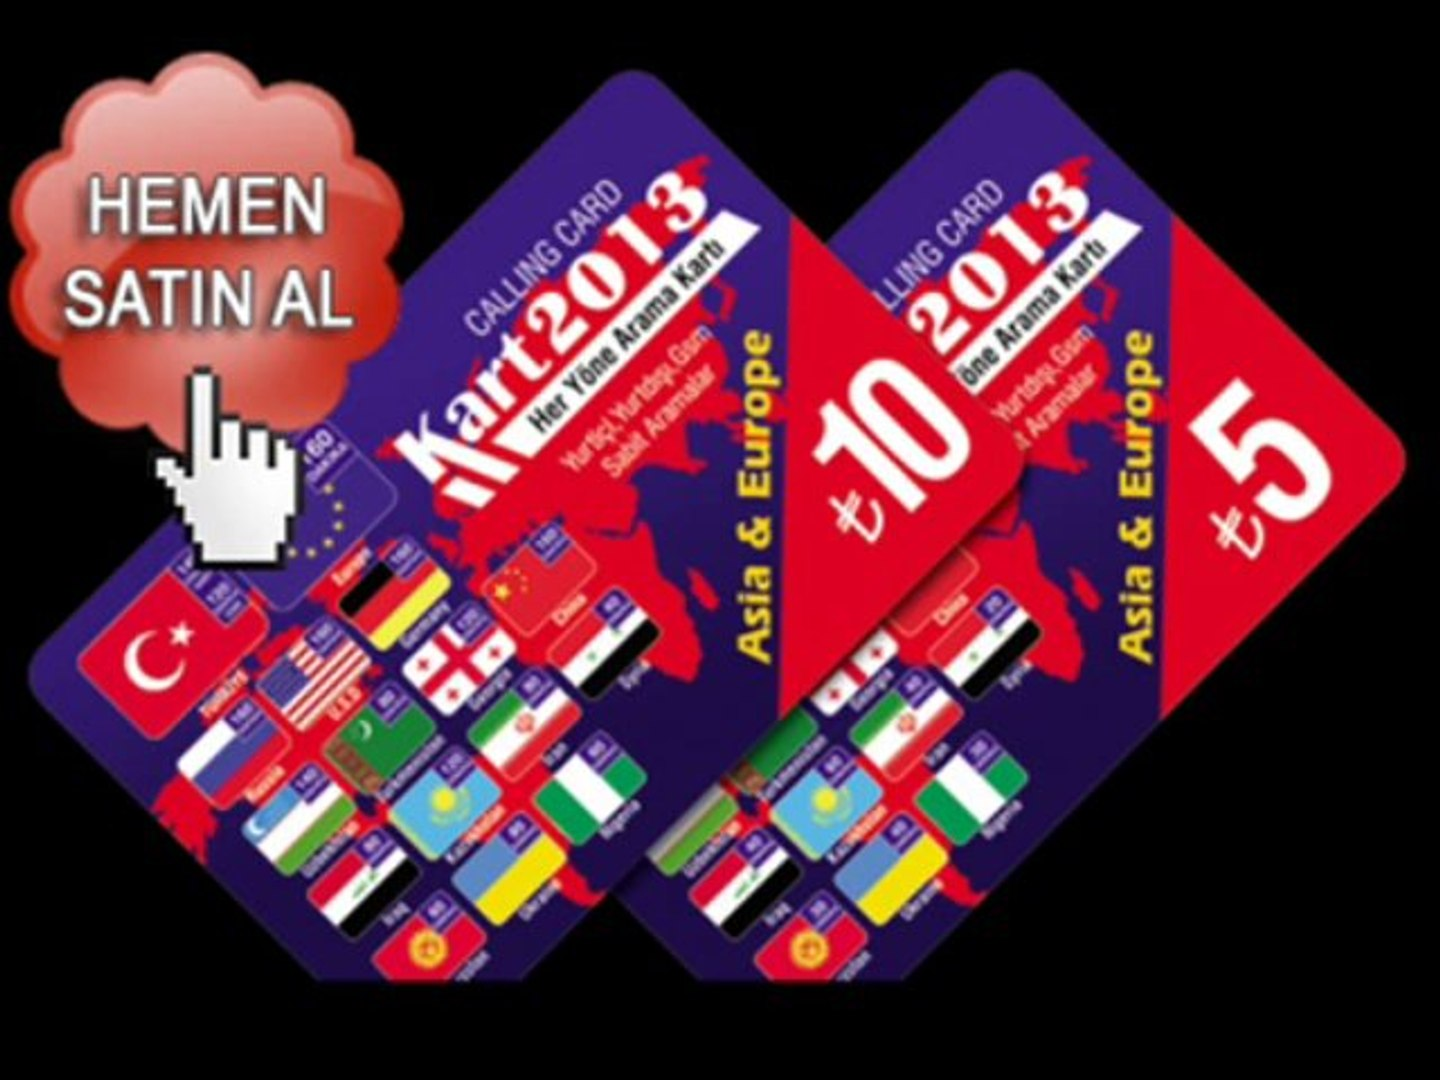 Kart2013,Kart2013,Kart2013,Kart2013::Turkey Telephone Cards